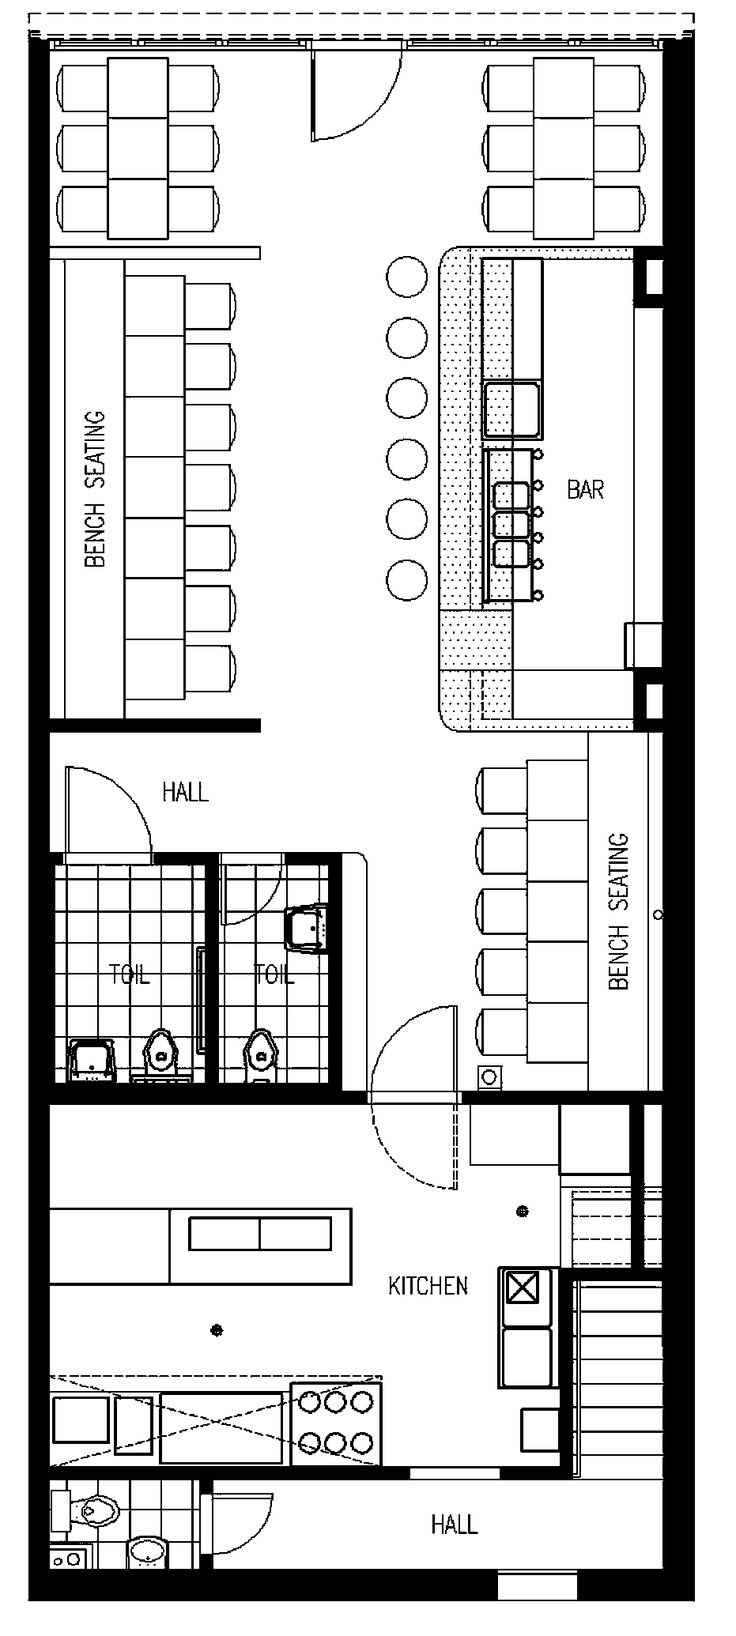 Restaurant floor plans templates - Cafe Floor Plan More